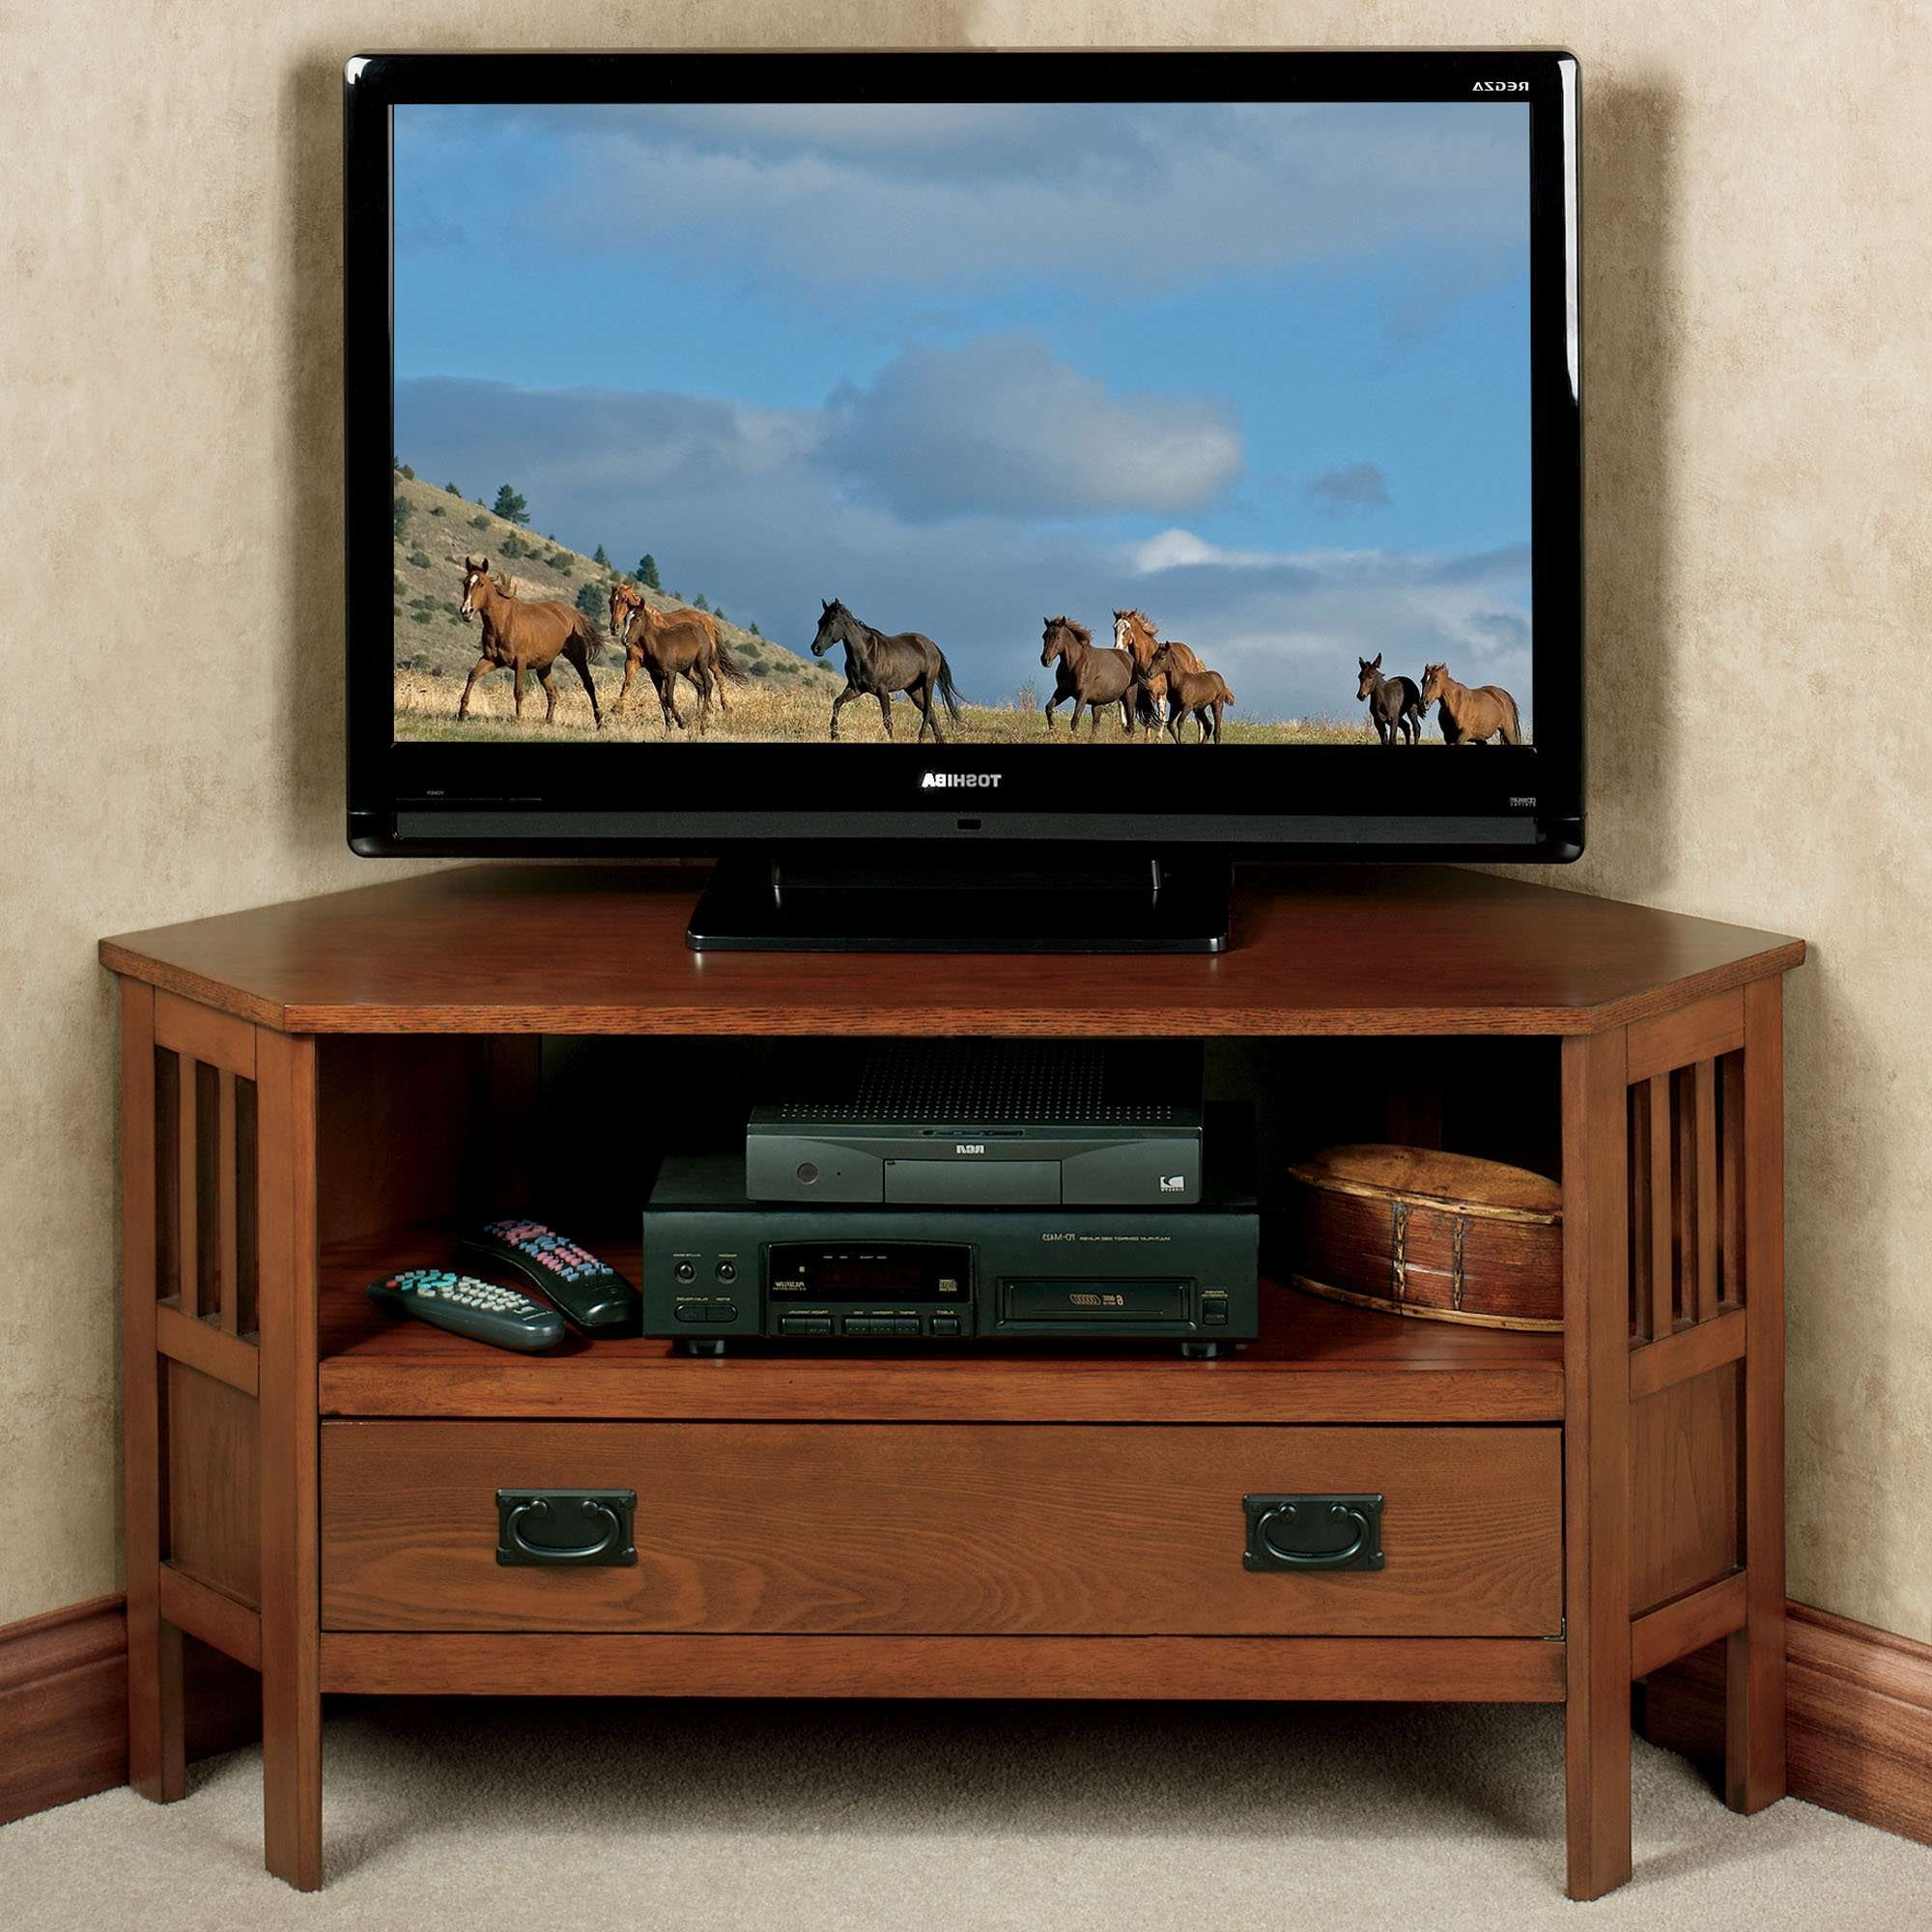 Home Decor: Alluring Wood Tv Stands For Flat Screens With Corner Intended For Corner Tv Stands With Drawers (View 5 of 15)